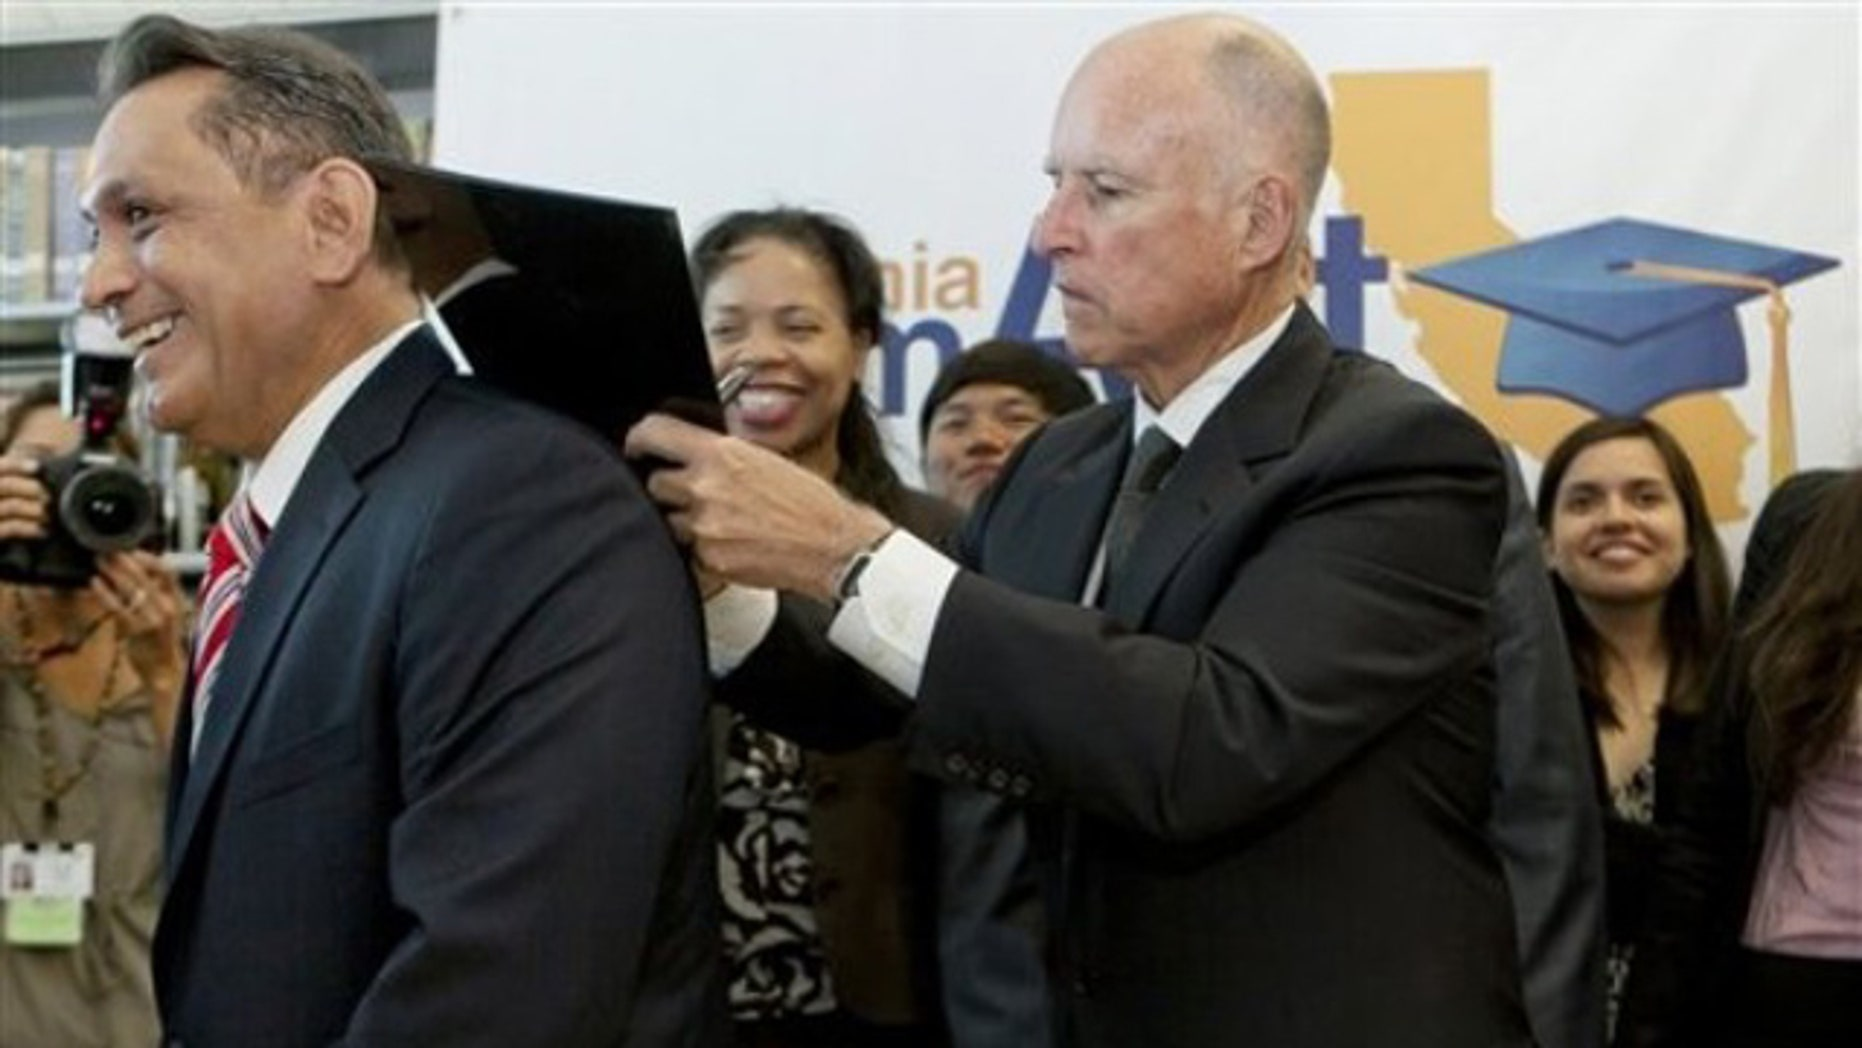 California Gov. Jerry Brown, right, signs AB 130 Dream Act bill on the back of Assemblyman Gil Cedillo, left, at the Mather Luther King Library at the Los Angeles City College Monday, July 25, 2011, in Los Angeles.